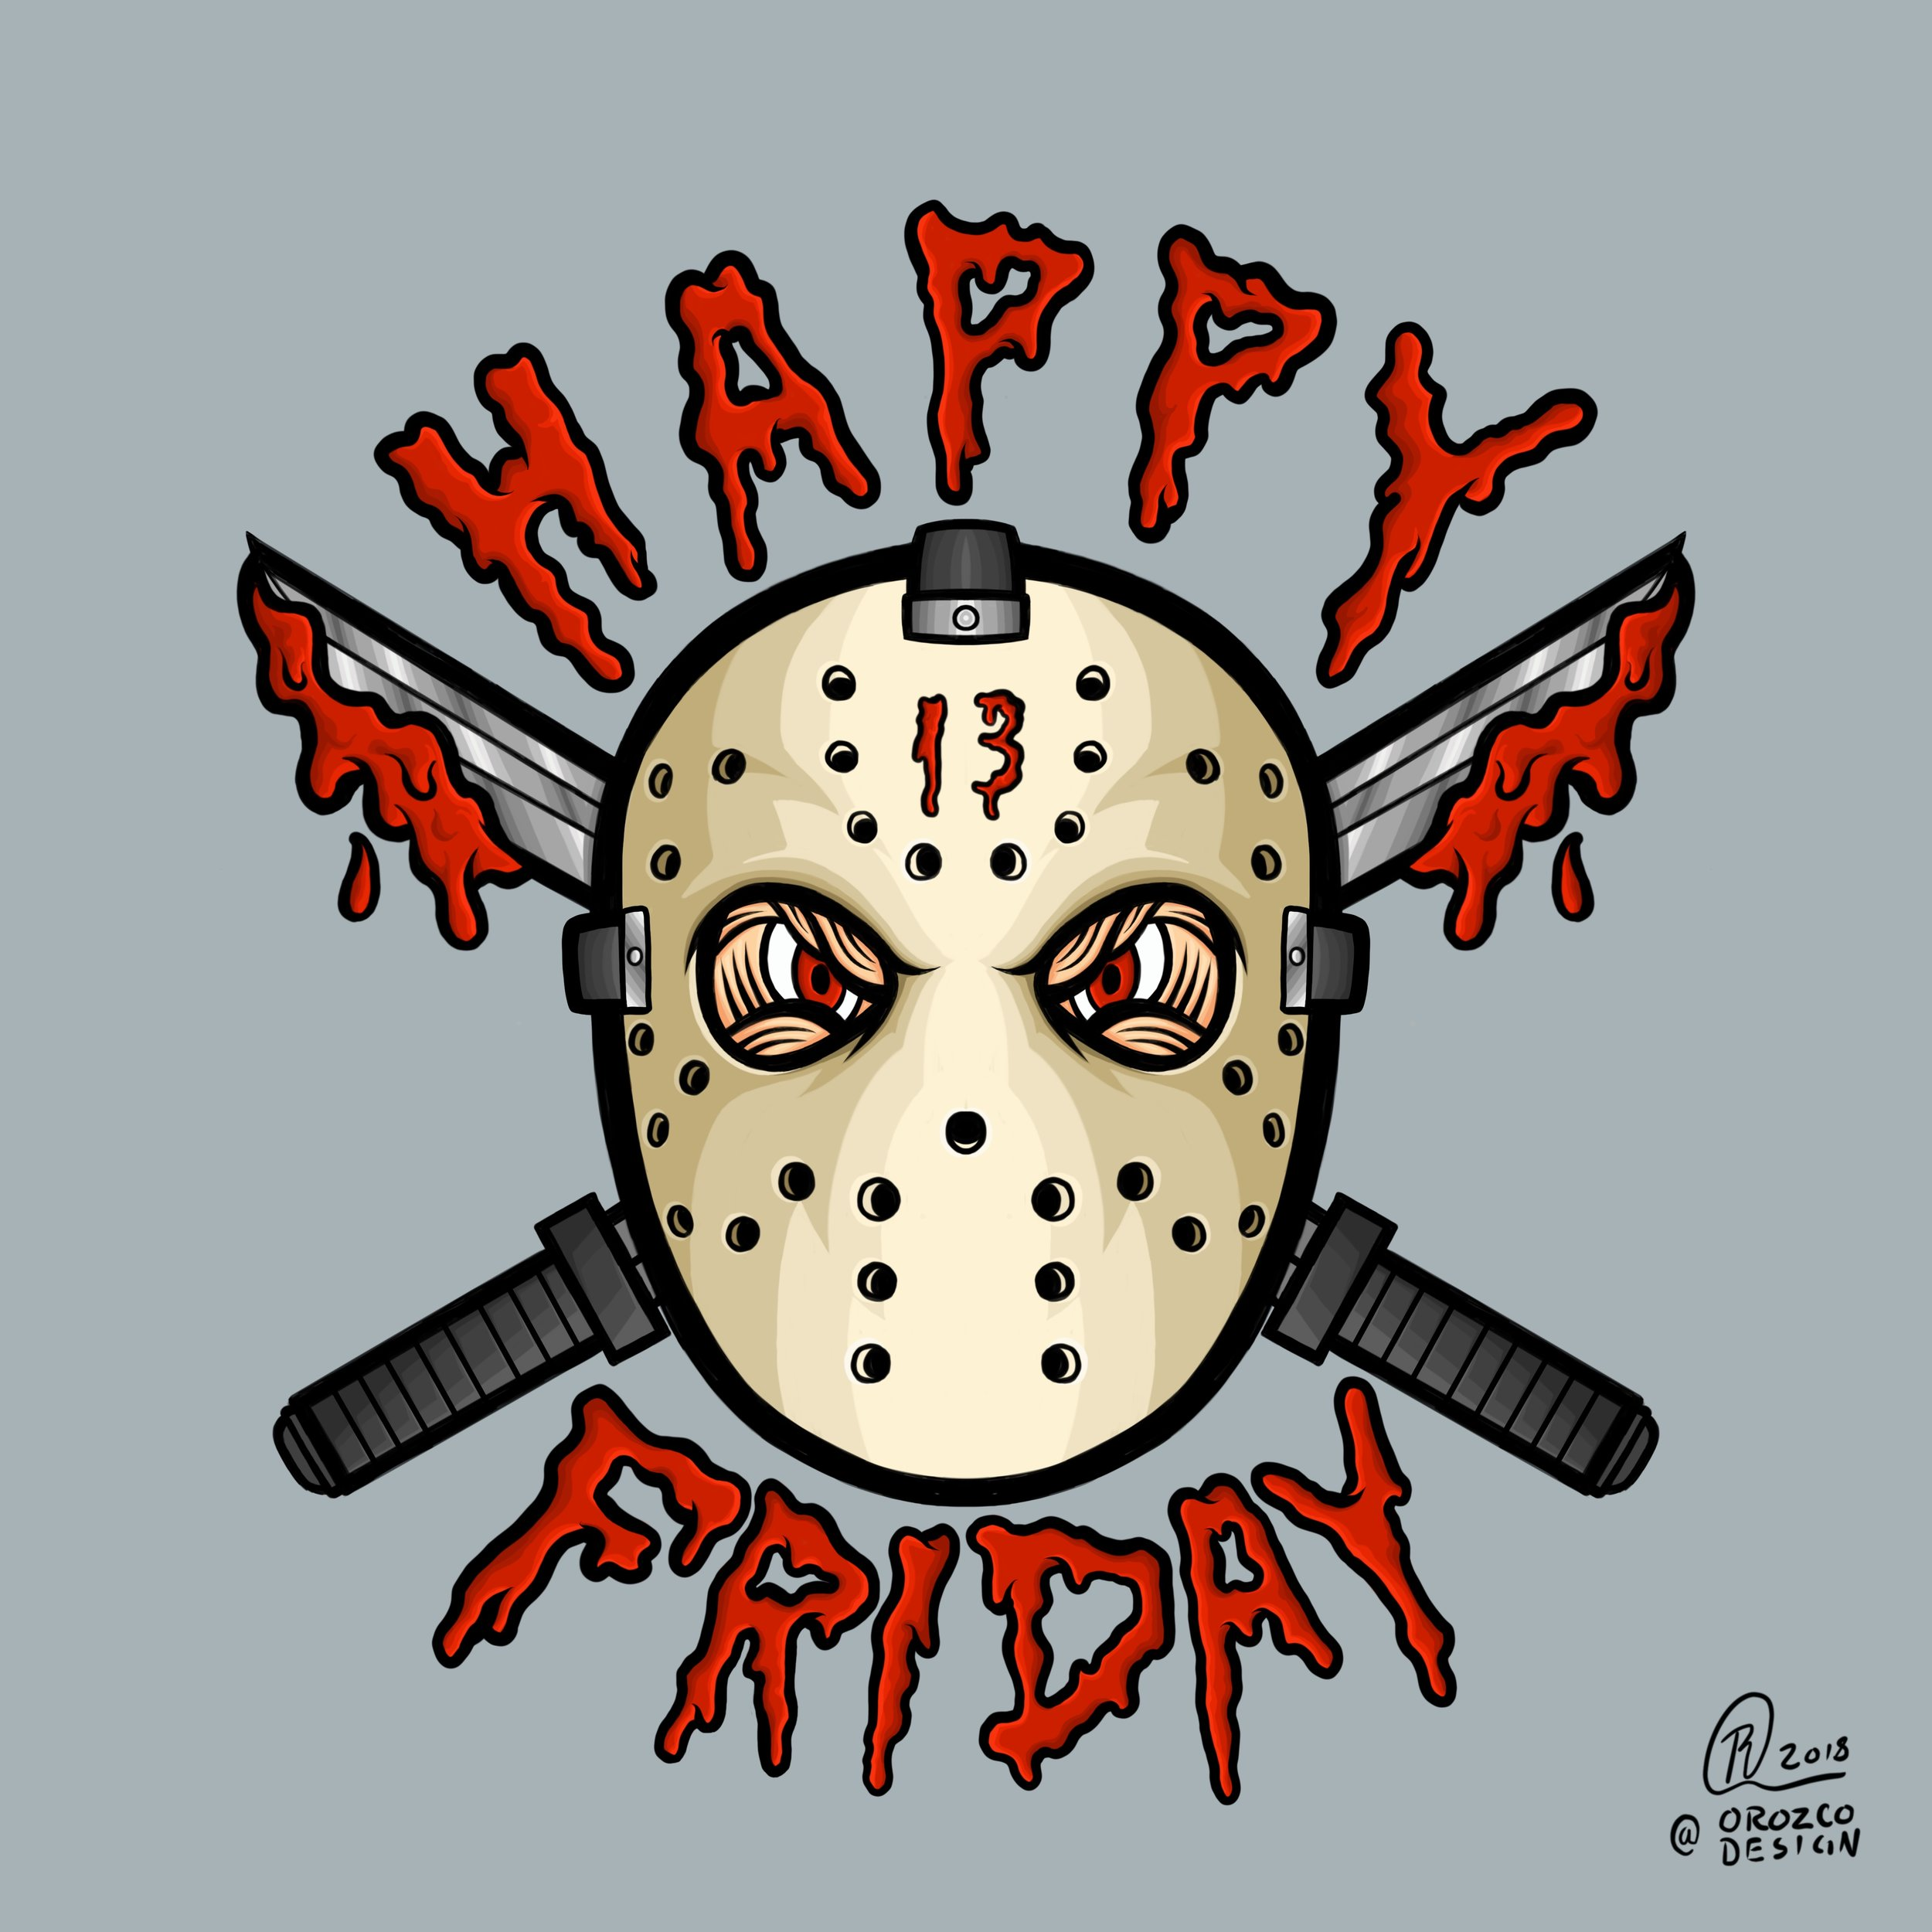 happy-friday-the-13th-jason-horror-movie-cartoon-orozco-design.JPG